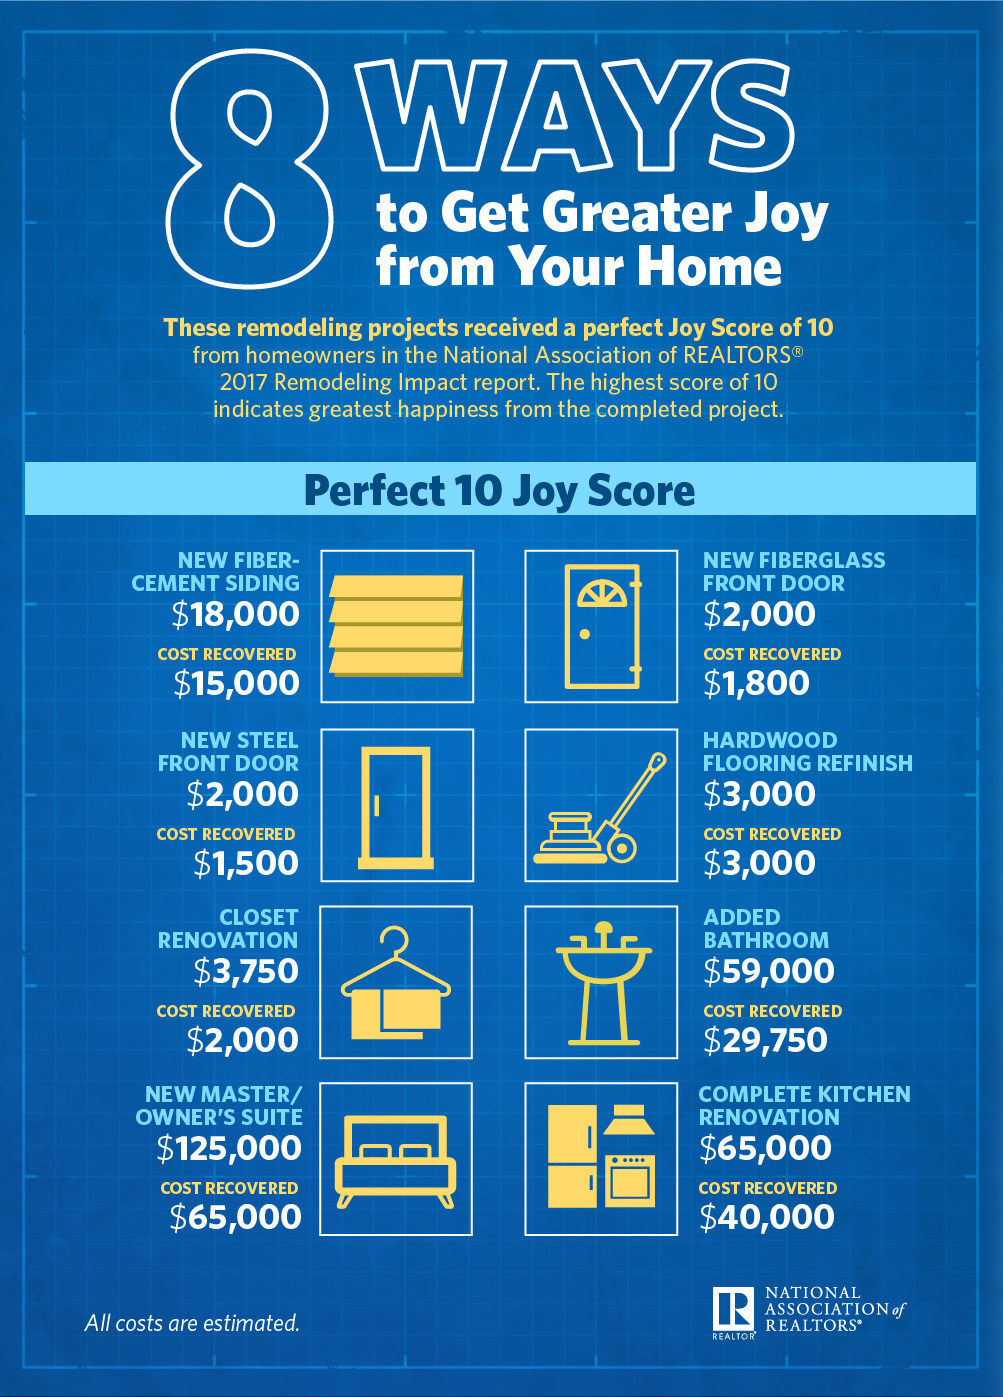 8 Ways to Get Greater Joy from Your Home